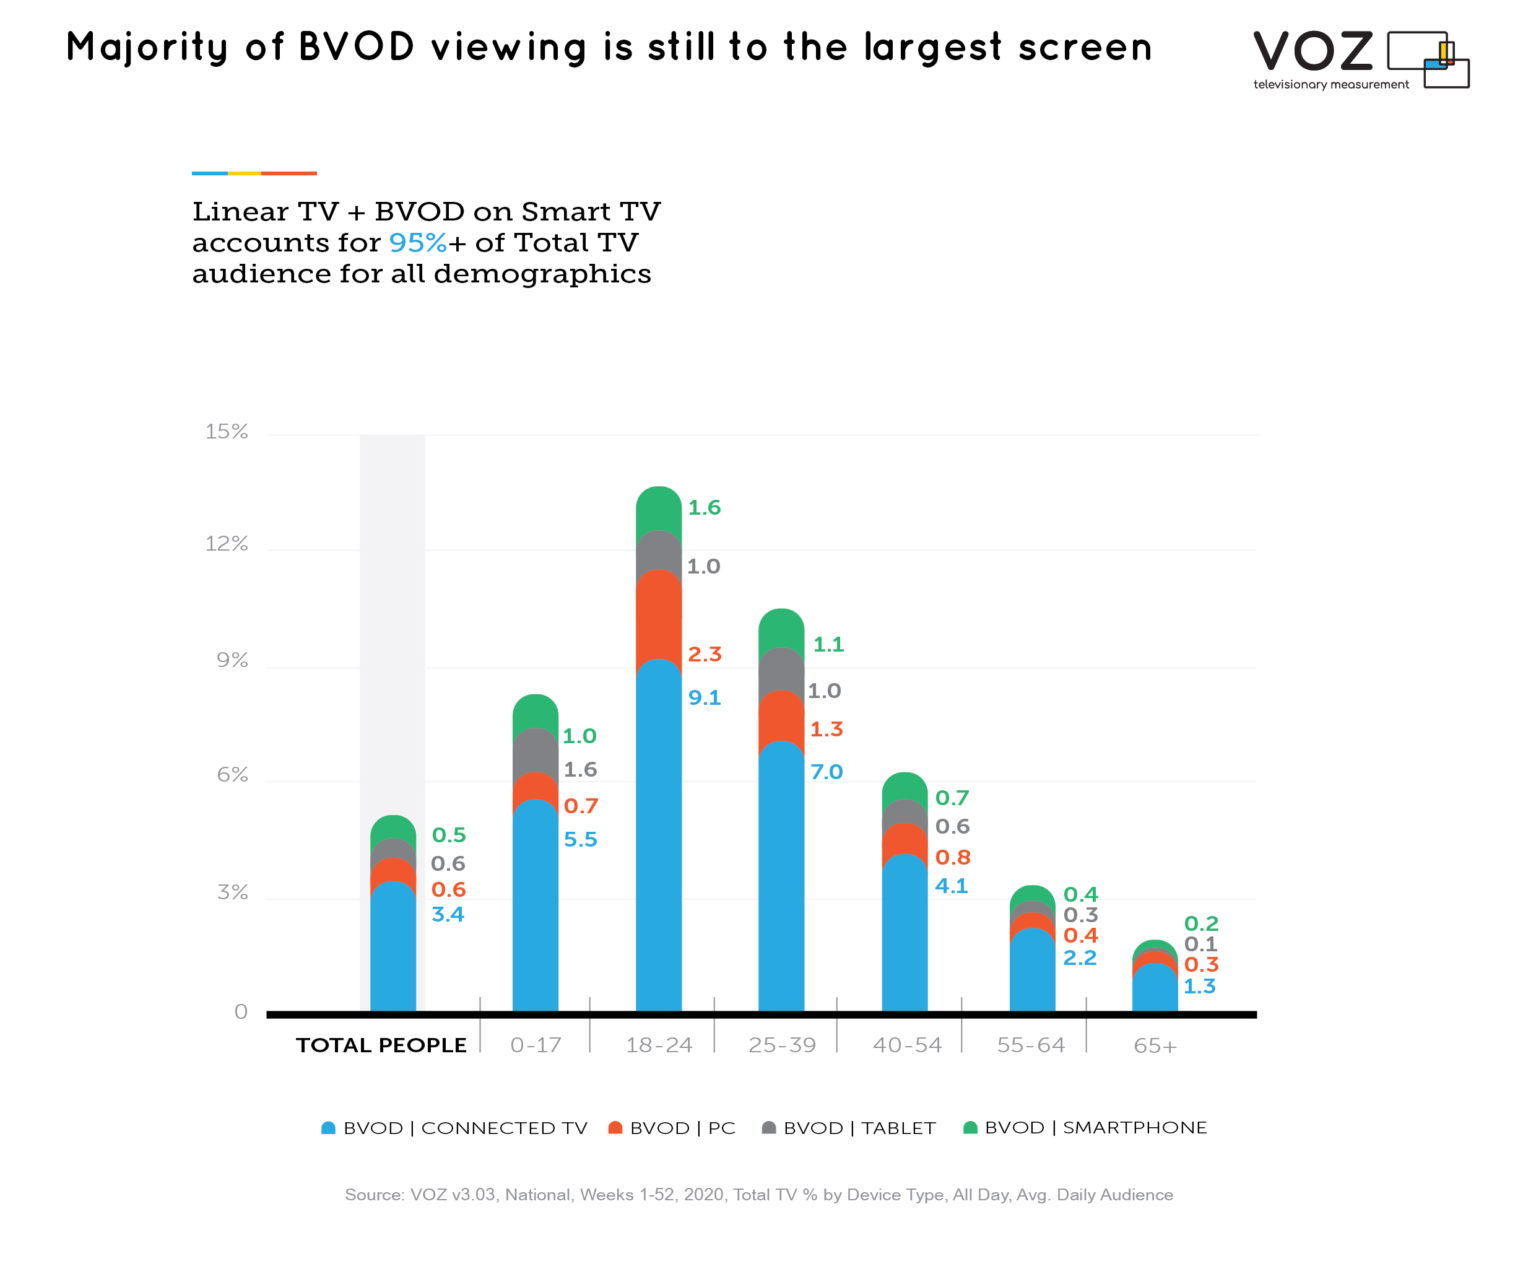 Australia - Majority of BVOD viewing is still to the largest screen - 2020